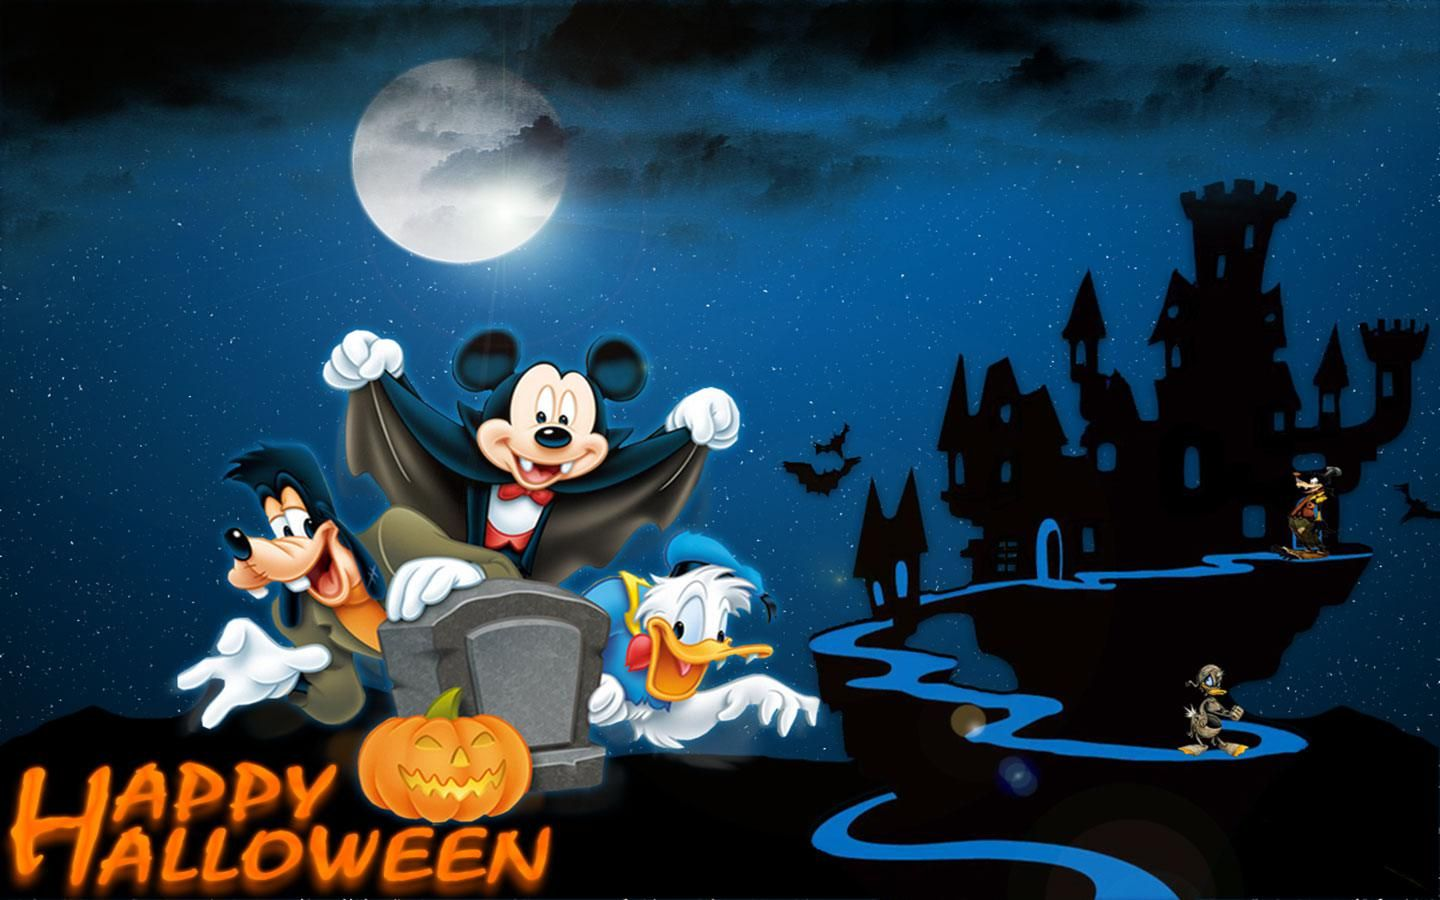 Mickey Mouse Happy Halloween Widescreen Wallpaper Hd Wallpaper, Mickey  Mouse Happy Halloween Widescreen Wallpaper Stock Photo Background, Mickey  Mouse Happy ...